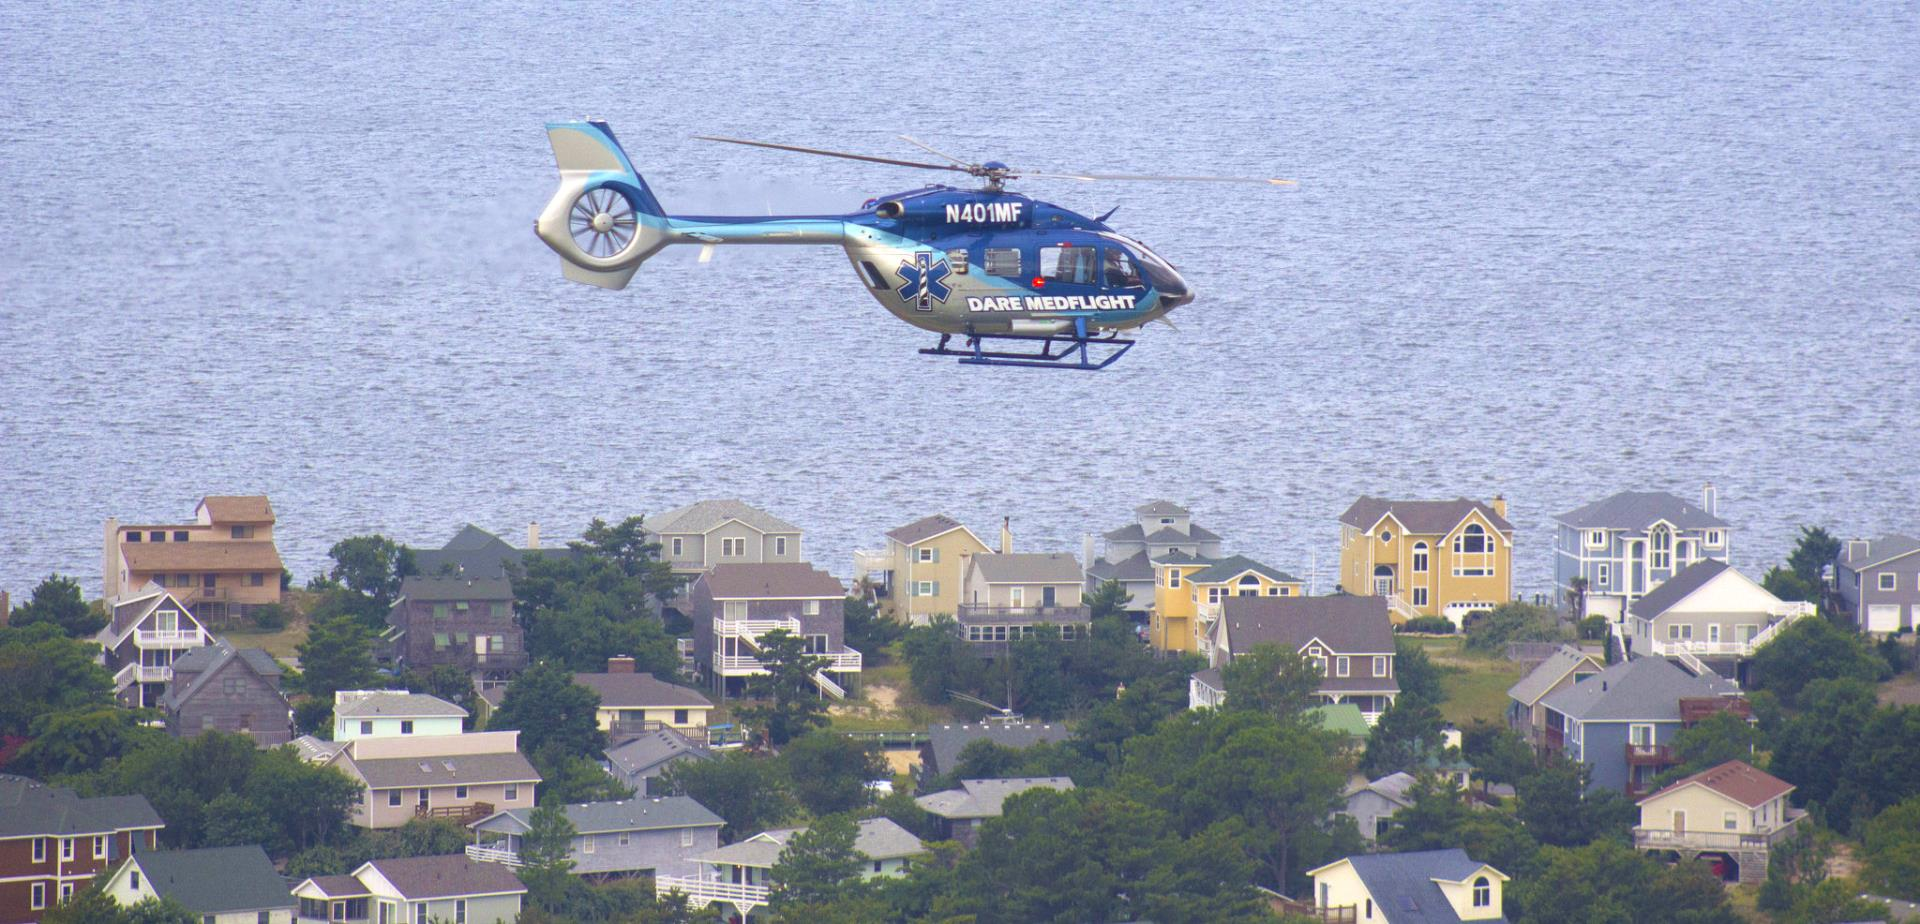 Dare MedFlight over Nags Head